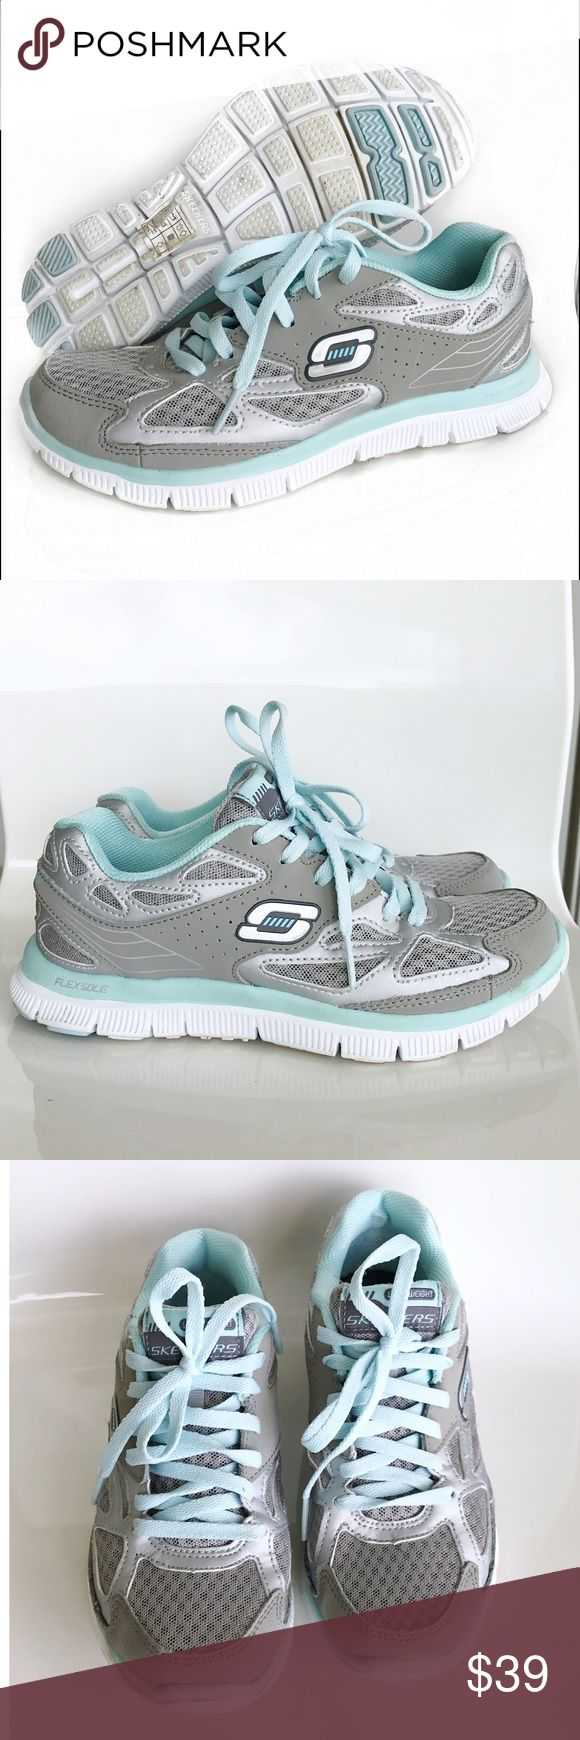 Skechers Flex Sole Gray and Teal Sneakers Skechers Flex Sole Memory Foam Gray and Teal Sneakers! These sneakers are so cute for the gym or running outdoors! Excellent condition. Lightweight. Super comfortable because of memory foam.  Leather synthetic upper. Size 6.5. Skechers Shoes Sneakers